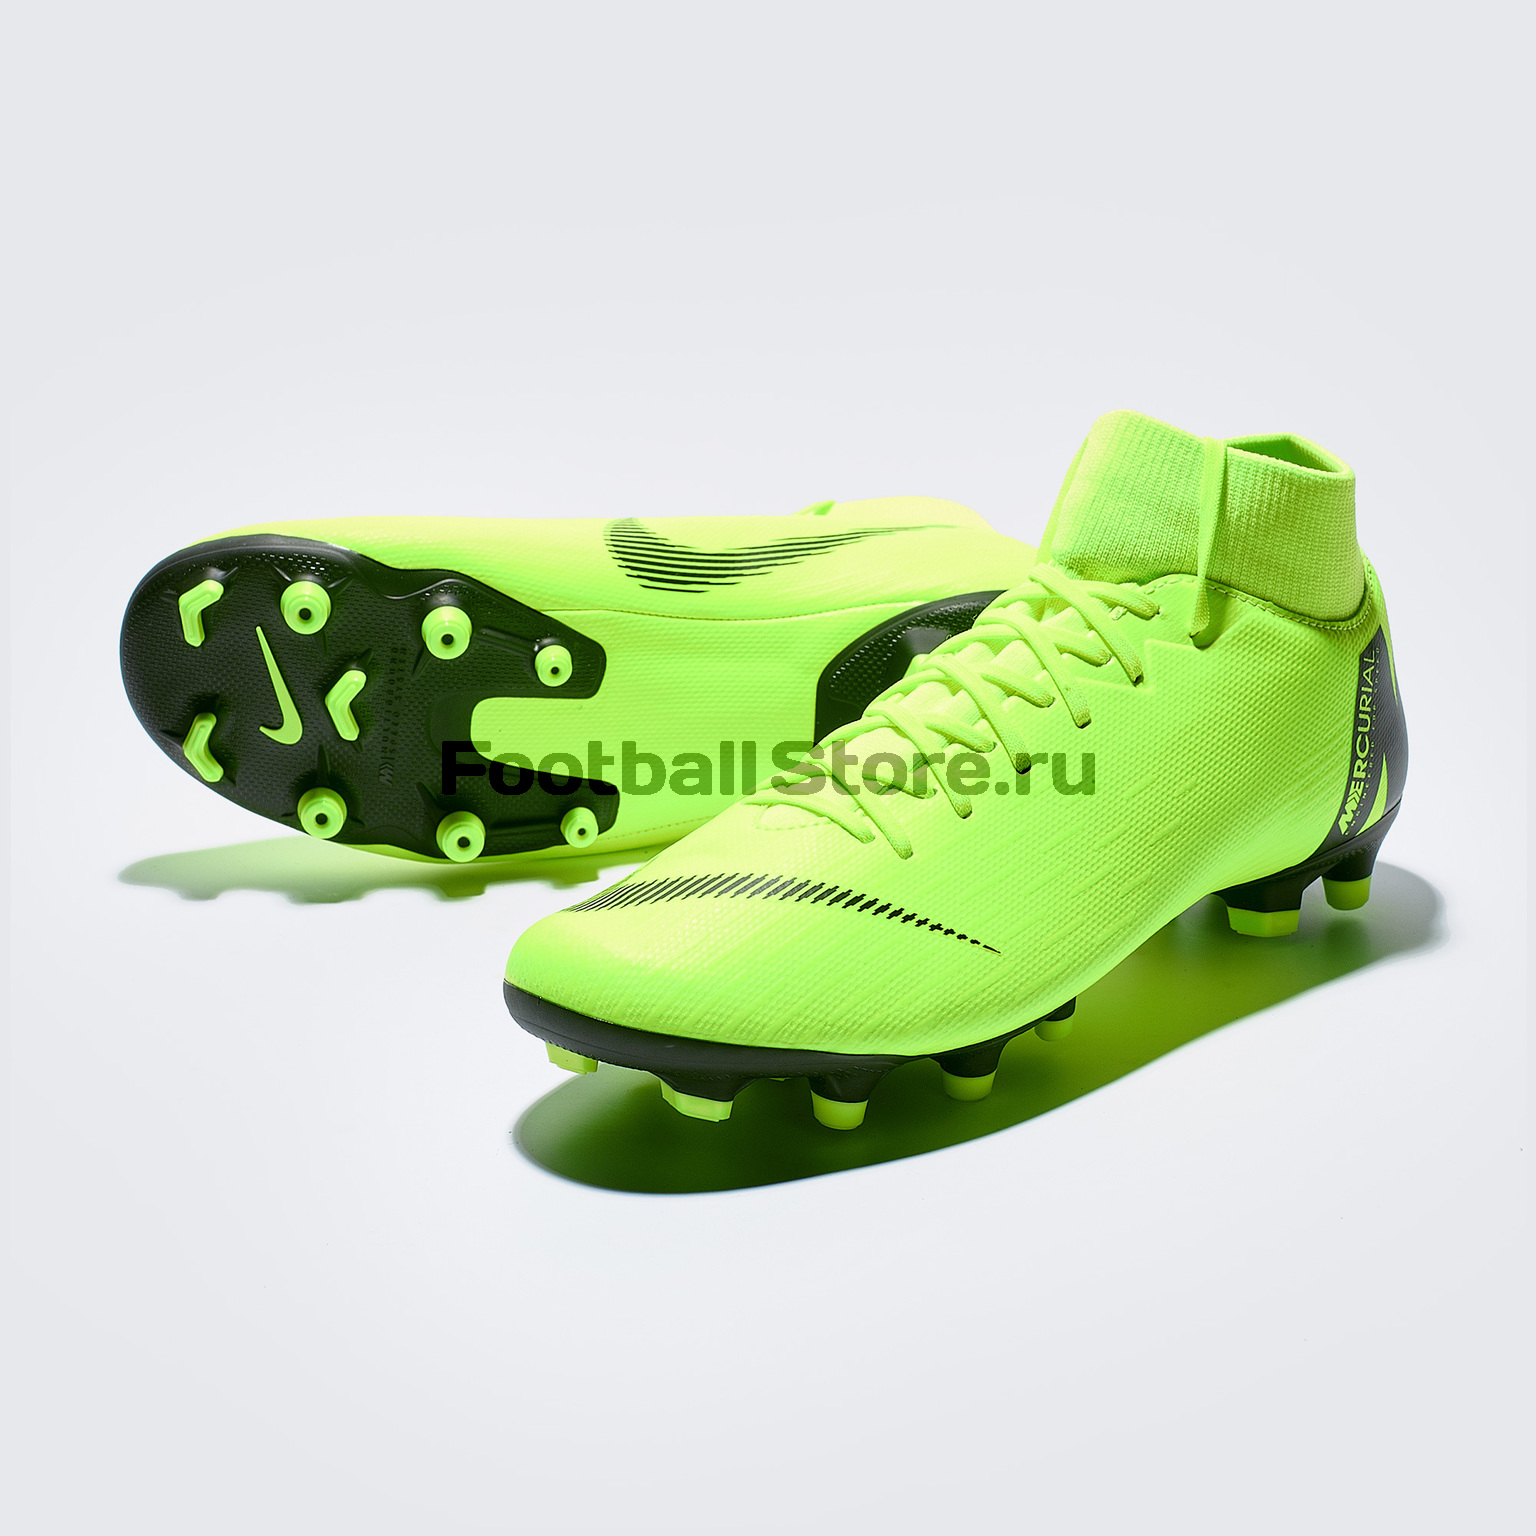 Бутсы Nike Superfly 6 Academy FG/MG AH7362-701 бутсы детские nike superfly academy gs cr7 fg mg aj3111 600